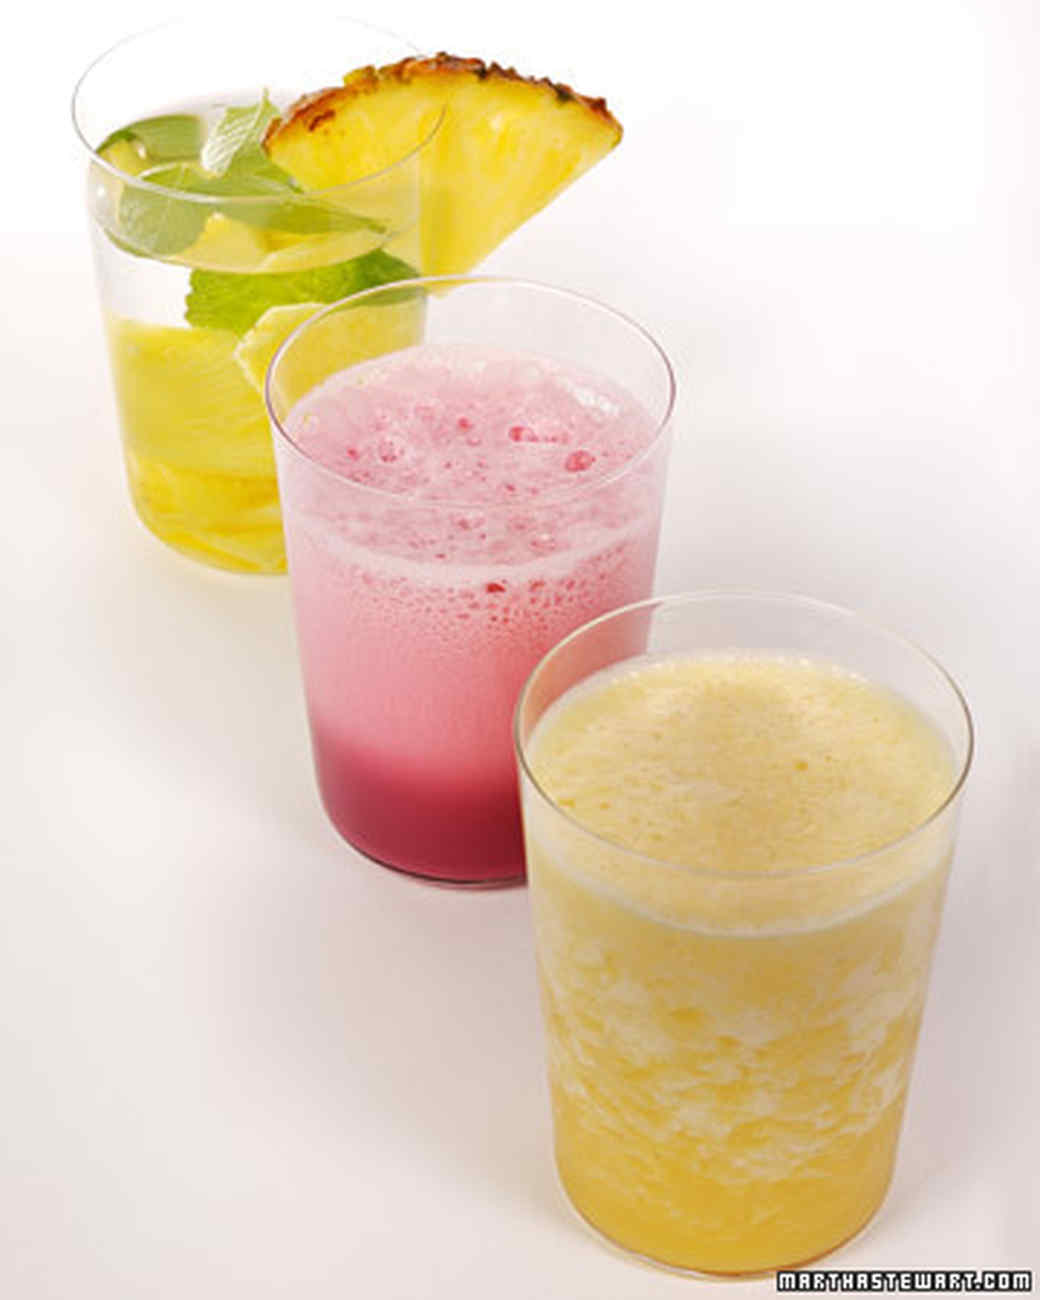 3073_010707_healthdrinks.jpg